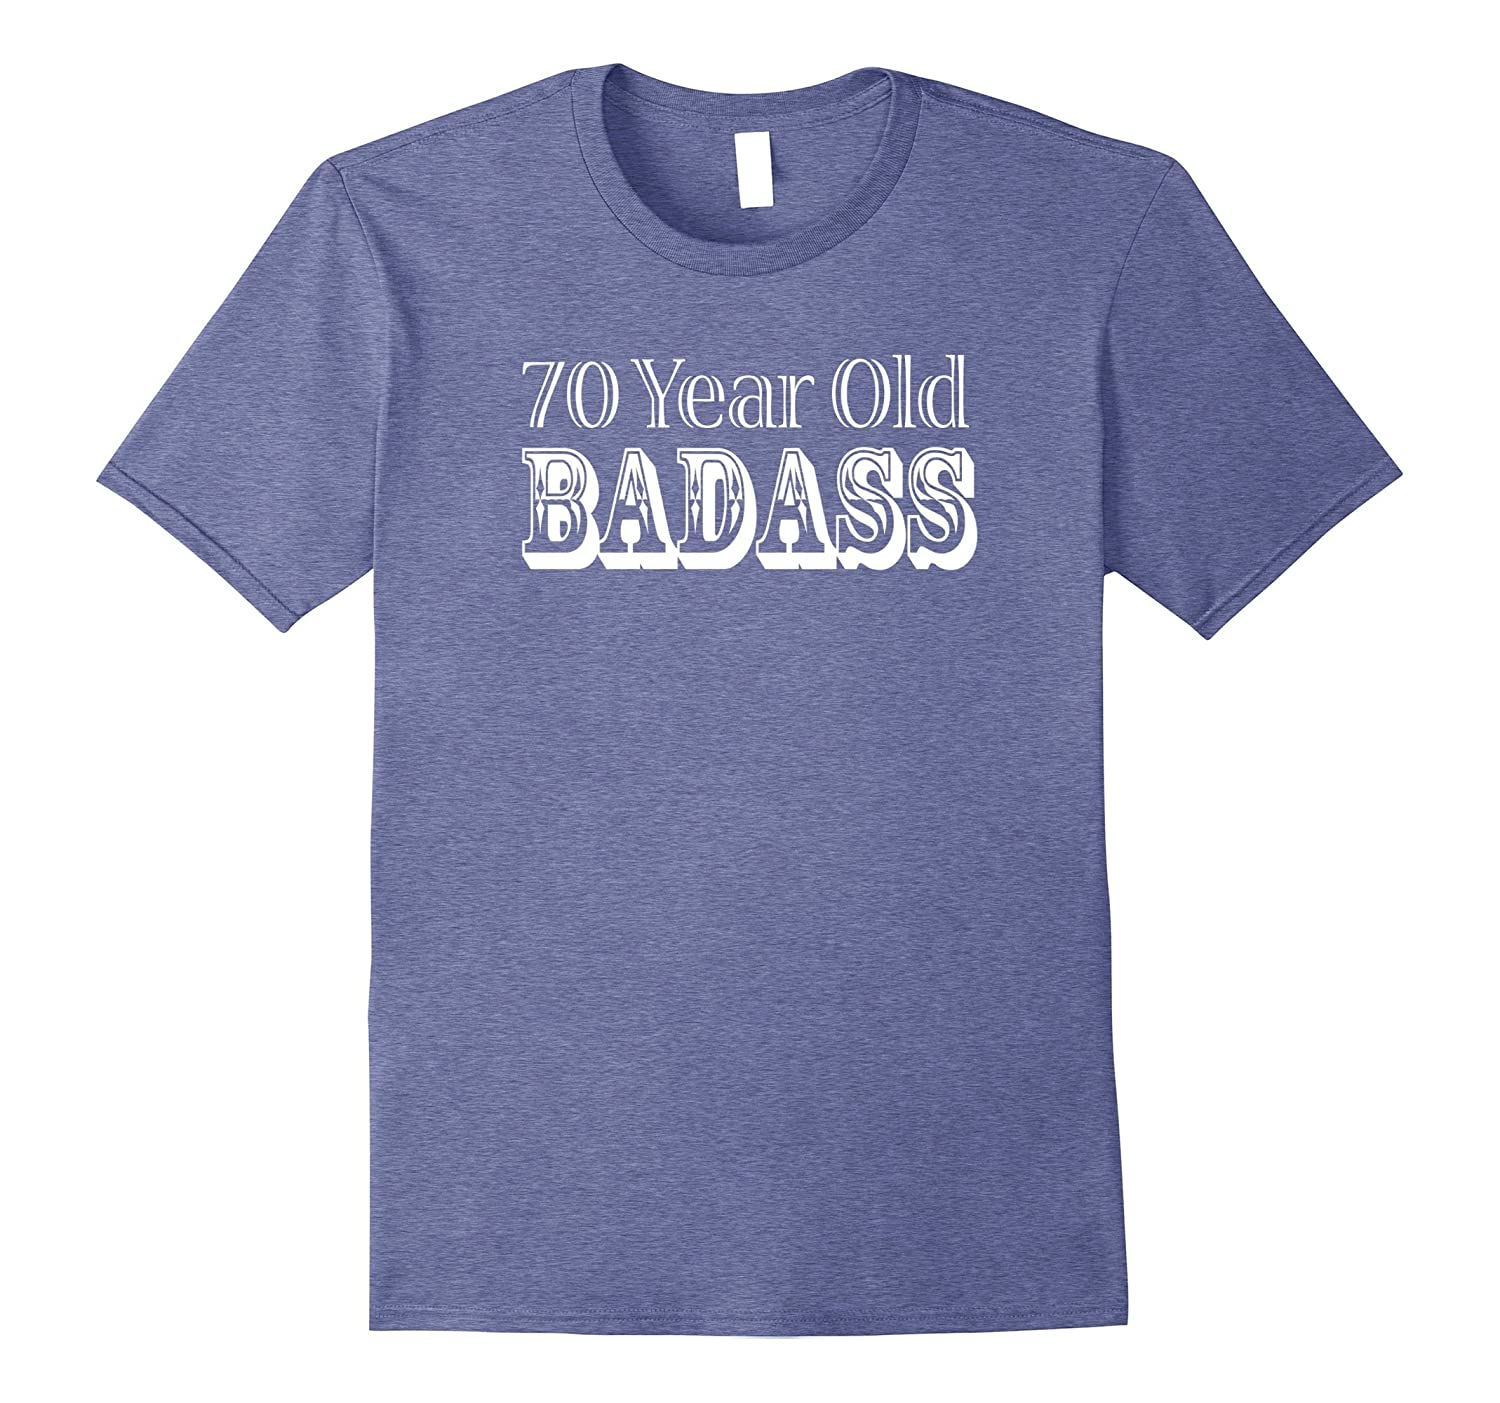 70 Year Old Badass Grandpa Grandma 70th Birthday Gift Anz